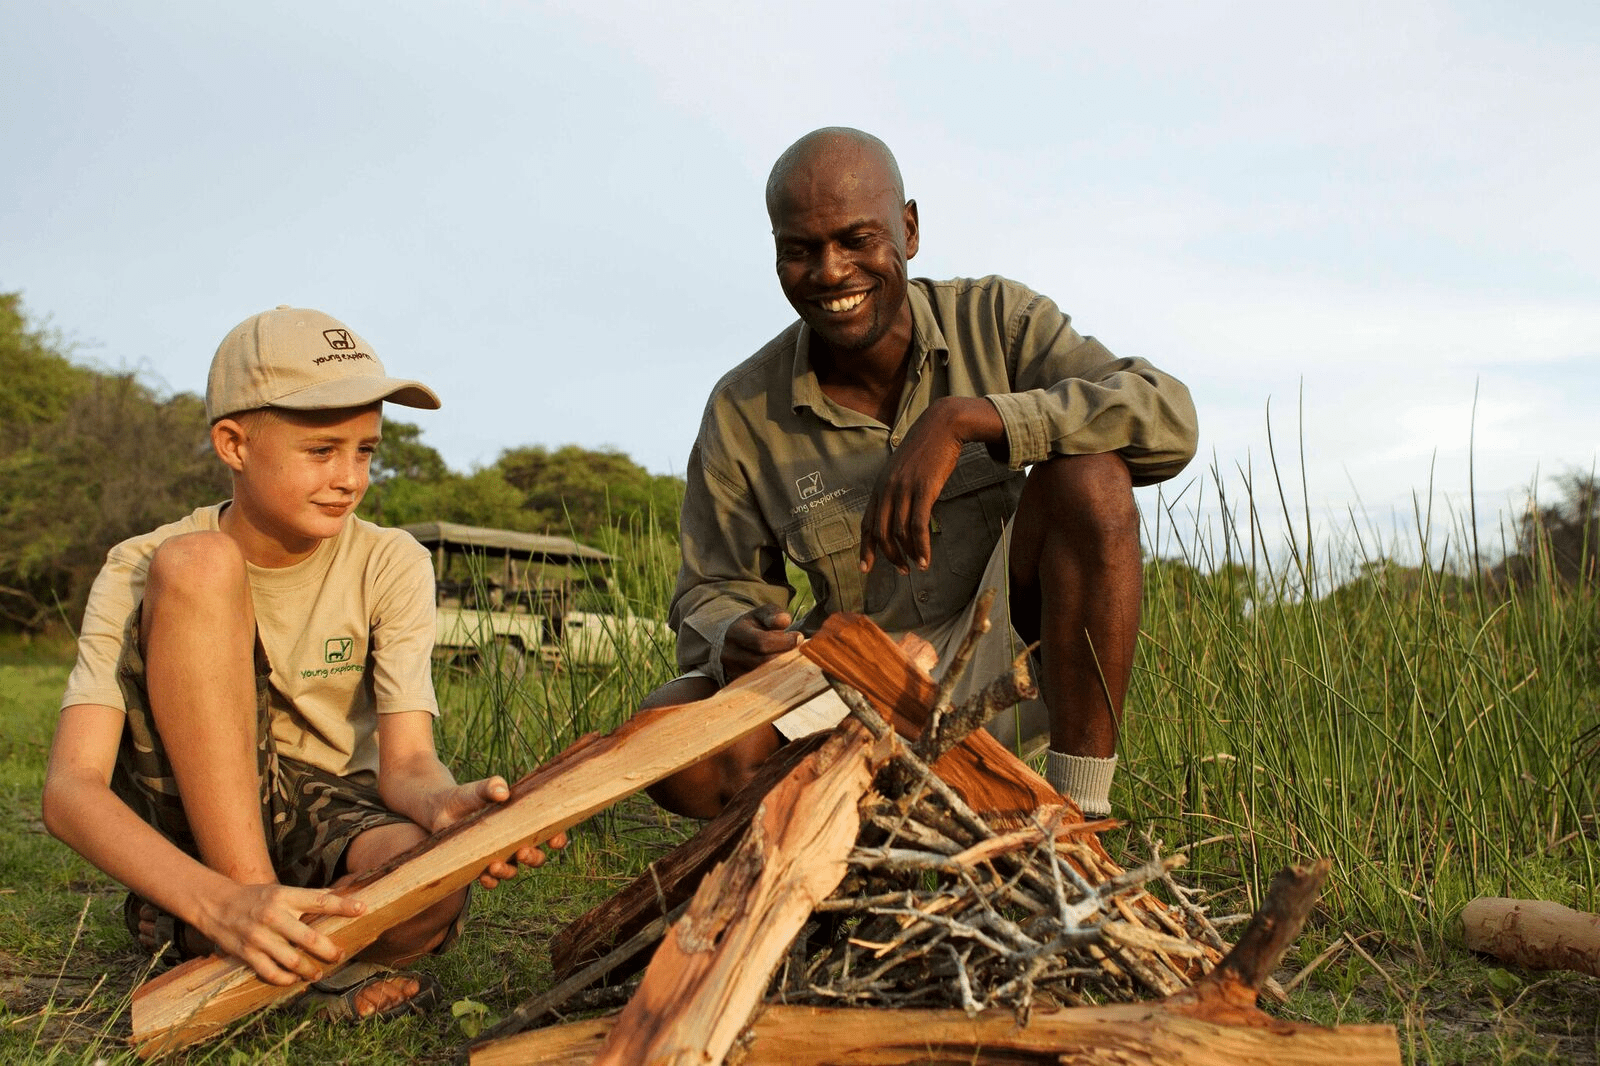 a smiling guide looks on as a young boy builds a fire as part of Footsteps Camp's Young Explorers program on this Southern Africa family safari